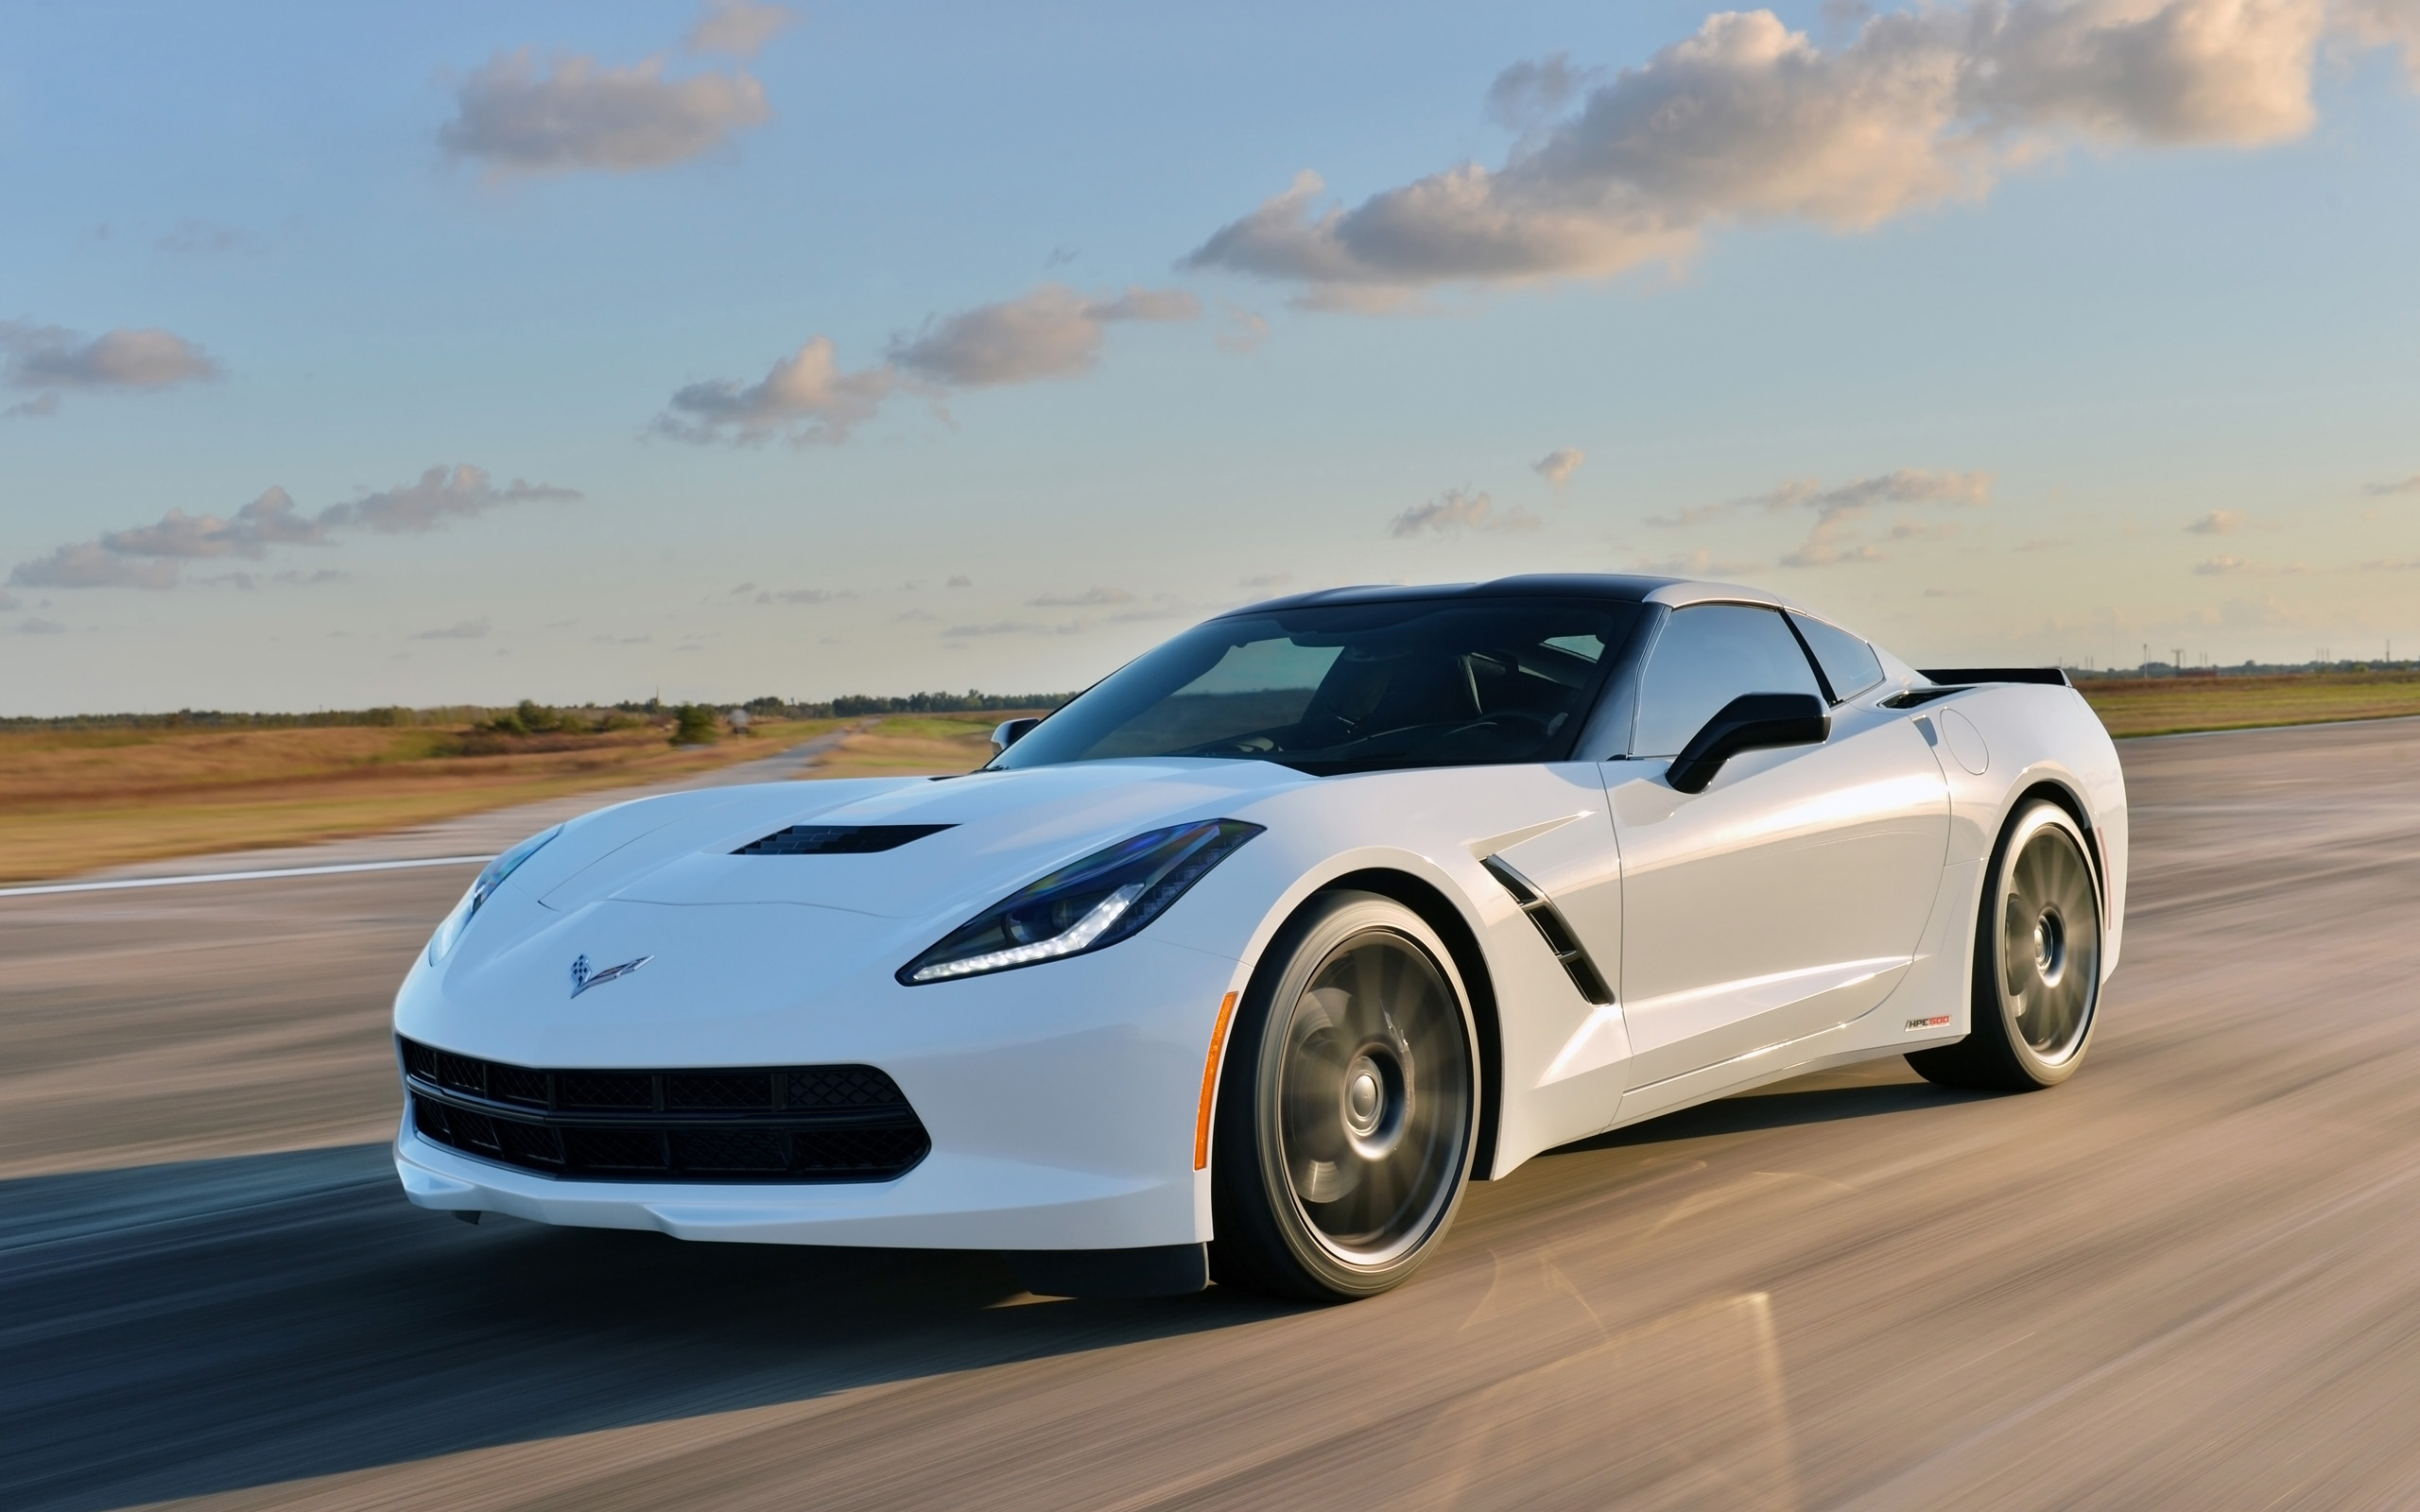 Awesome White Corvette Wallpaper